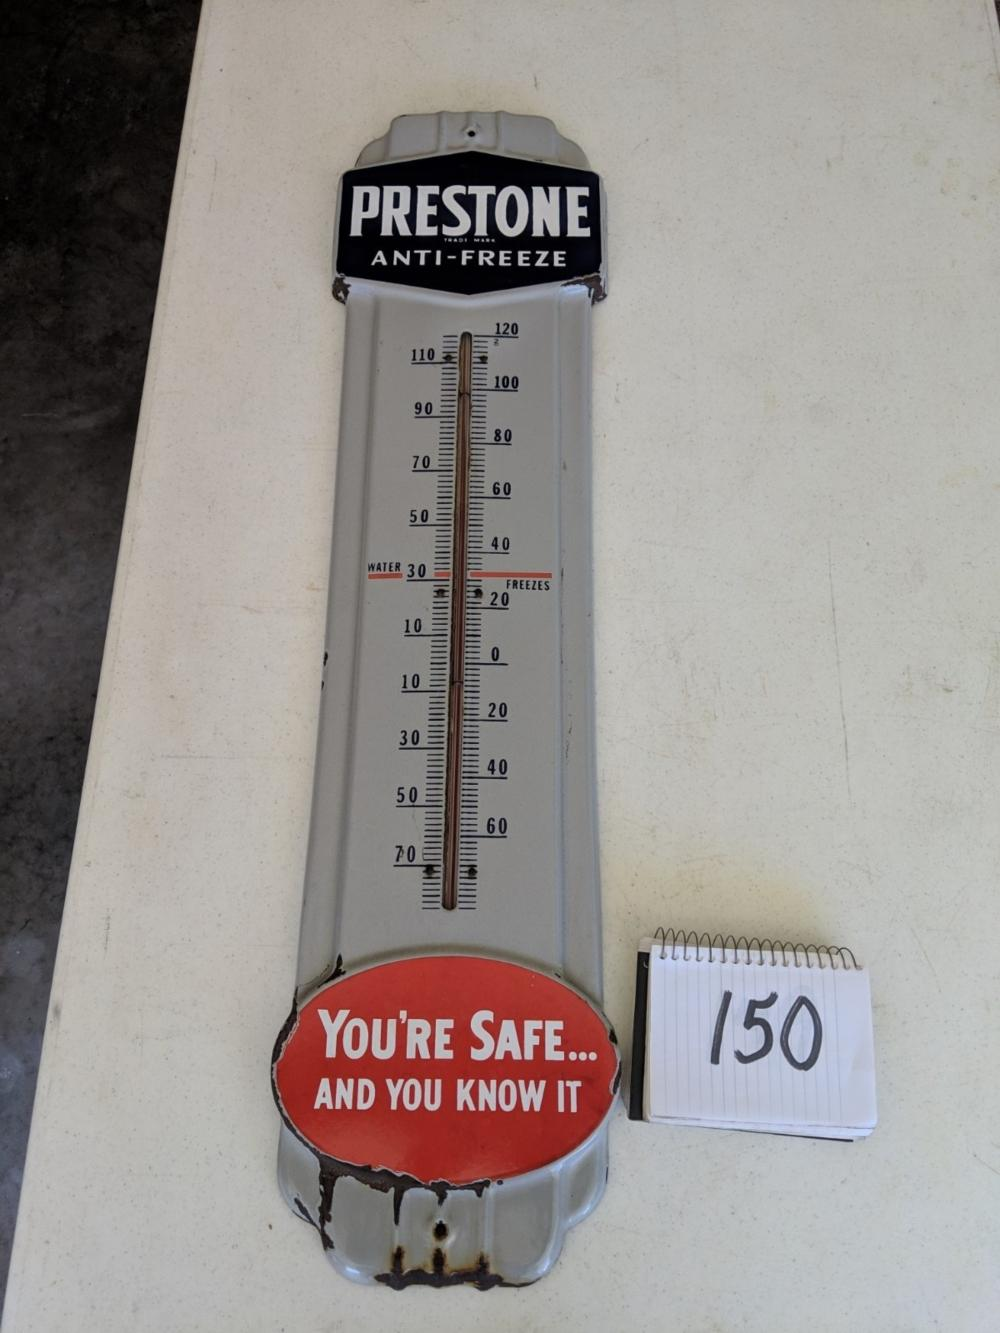 Prestone Anti-Freeze Thermometer Porcelain Sign 36""